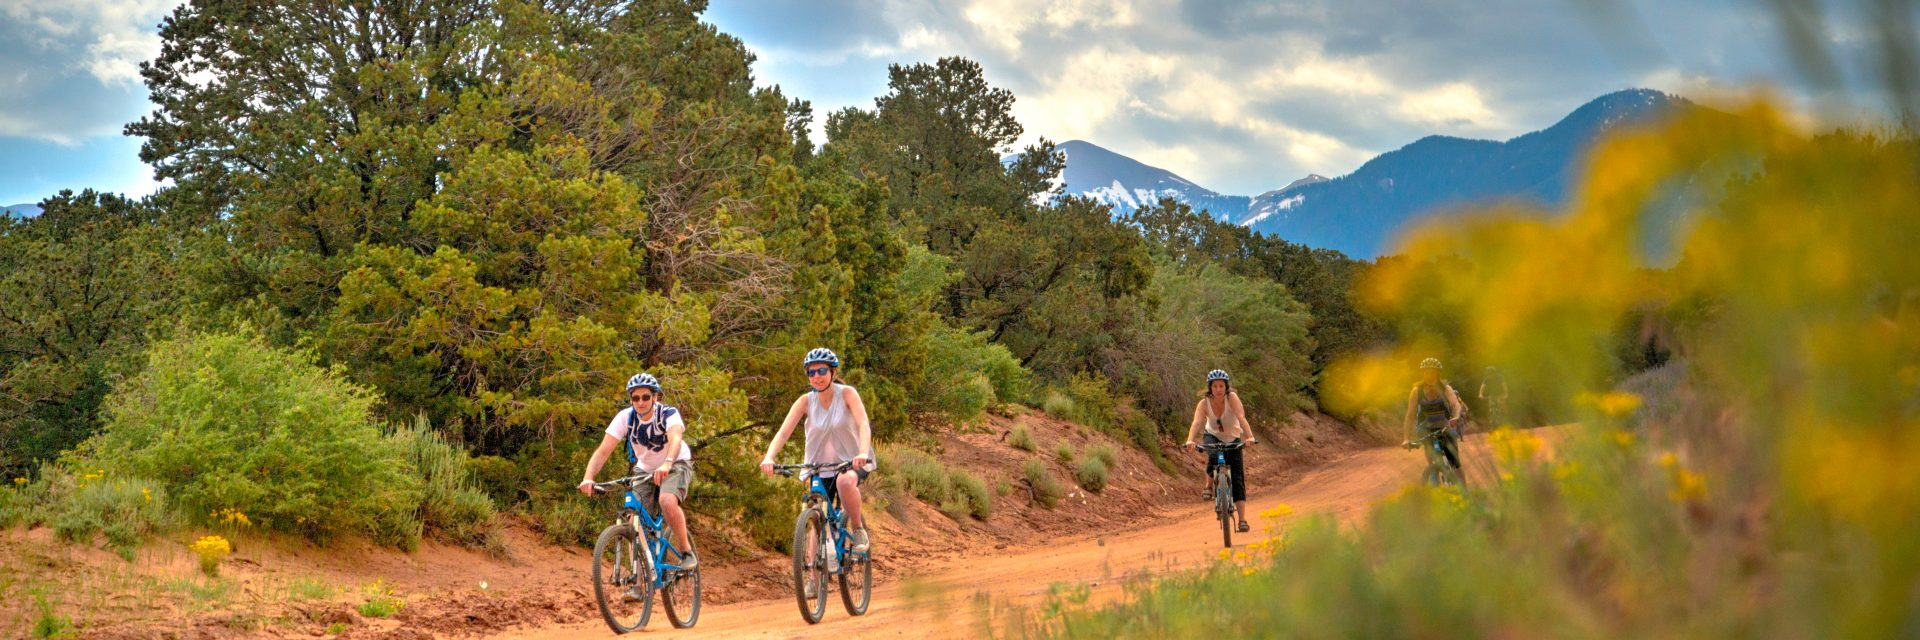 Mountain bike riders begin the big descent on Sand Flats Road as part of the Sunrise Downhill guided tour